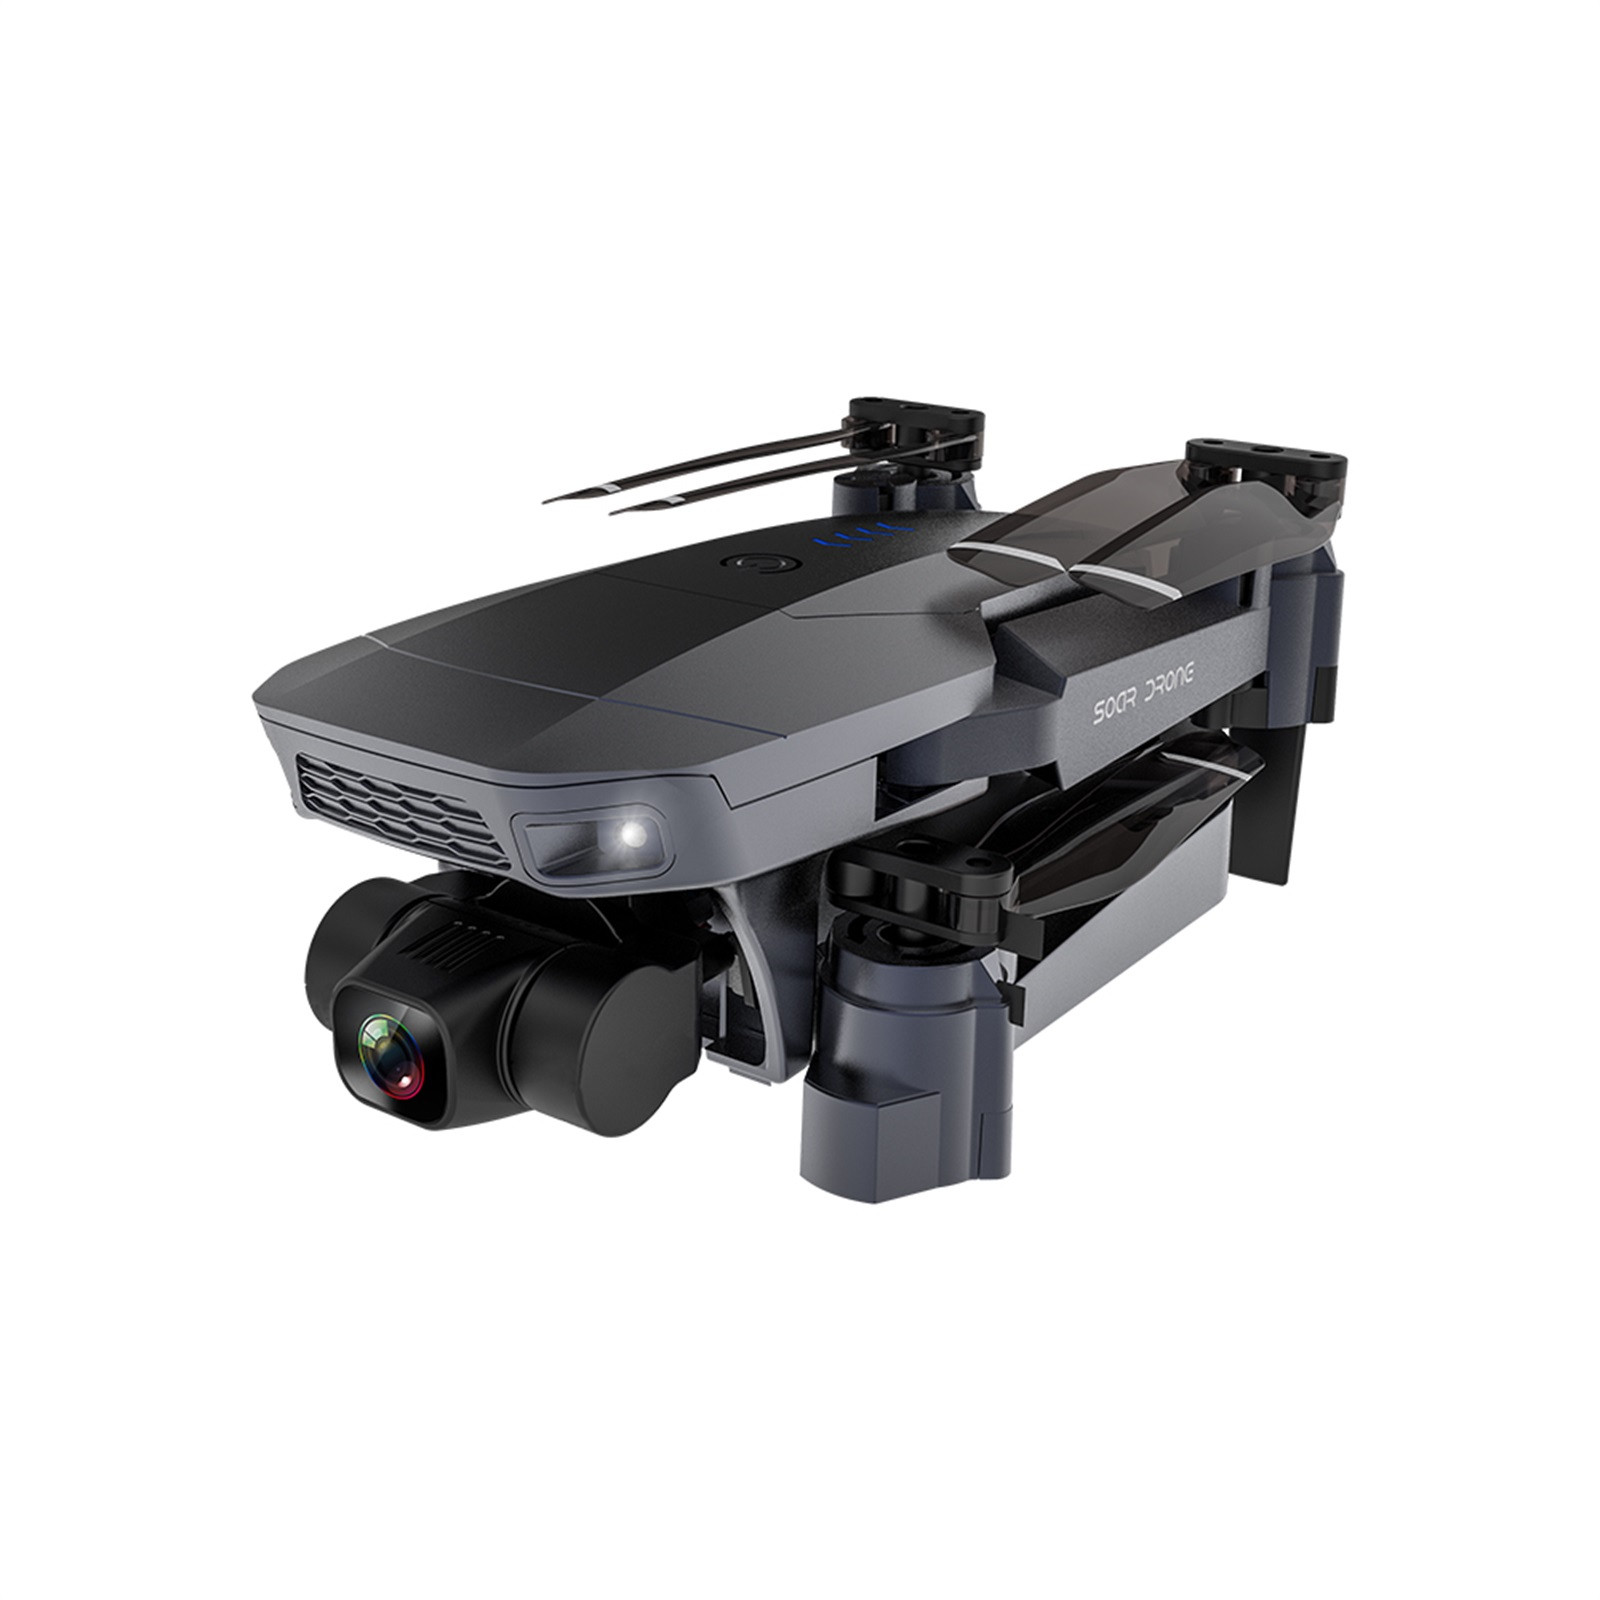 H68f2043351344d1f9d36fdcdd8af51e2i - 2020 New Sg907 Pro 5g Wifi Drone 2-axis Gimbal 4k Camera Wifi Gps Rc Drone Toy Rc Four-axis Professional Folding Camera Drones